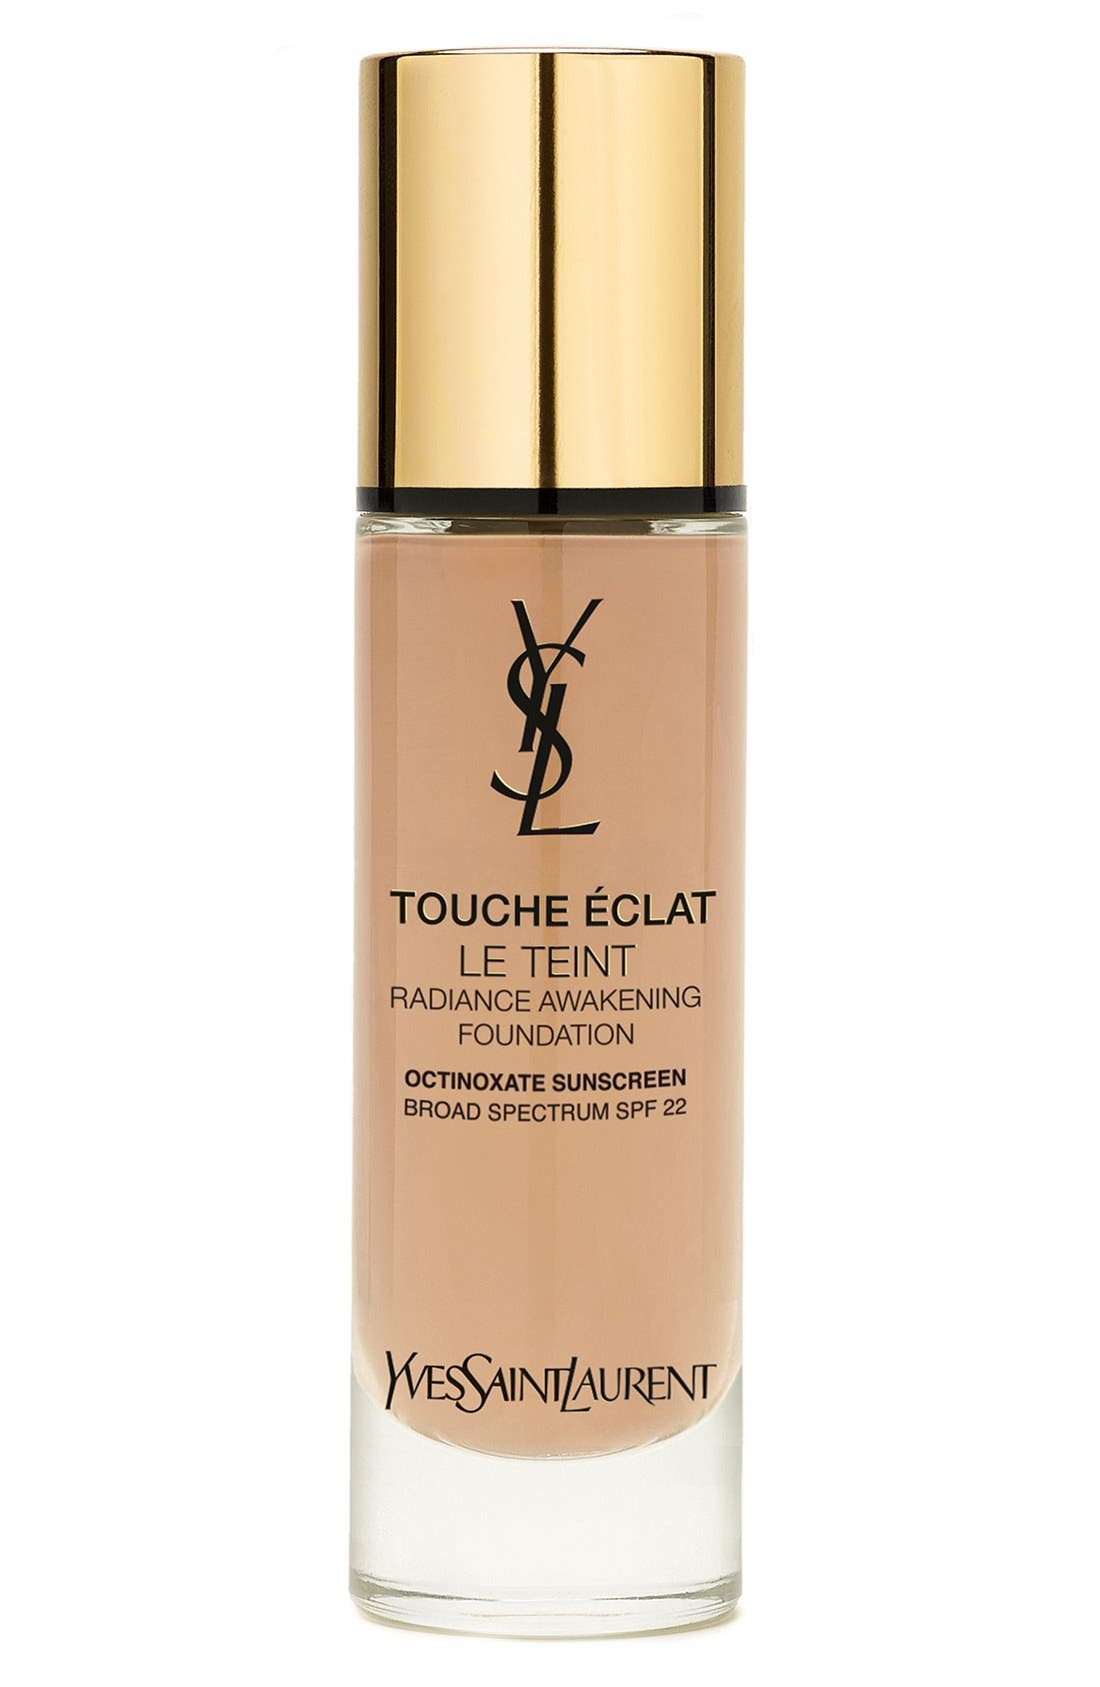 Yves Saint Laurent Touche Éclat Le Teint Radiance Awakening Foundation SPF 22